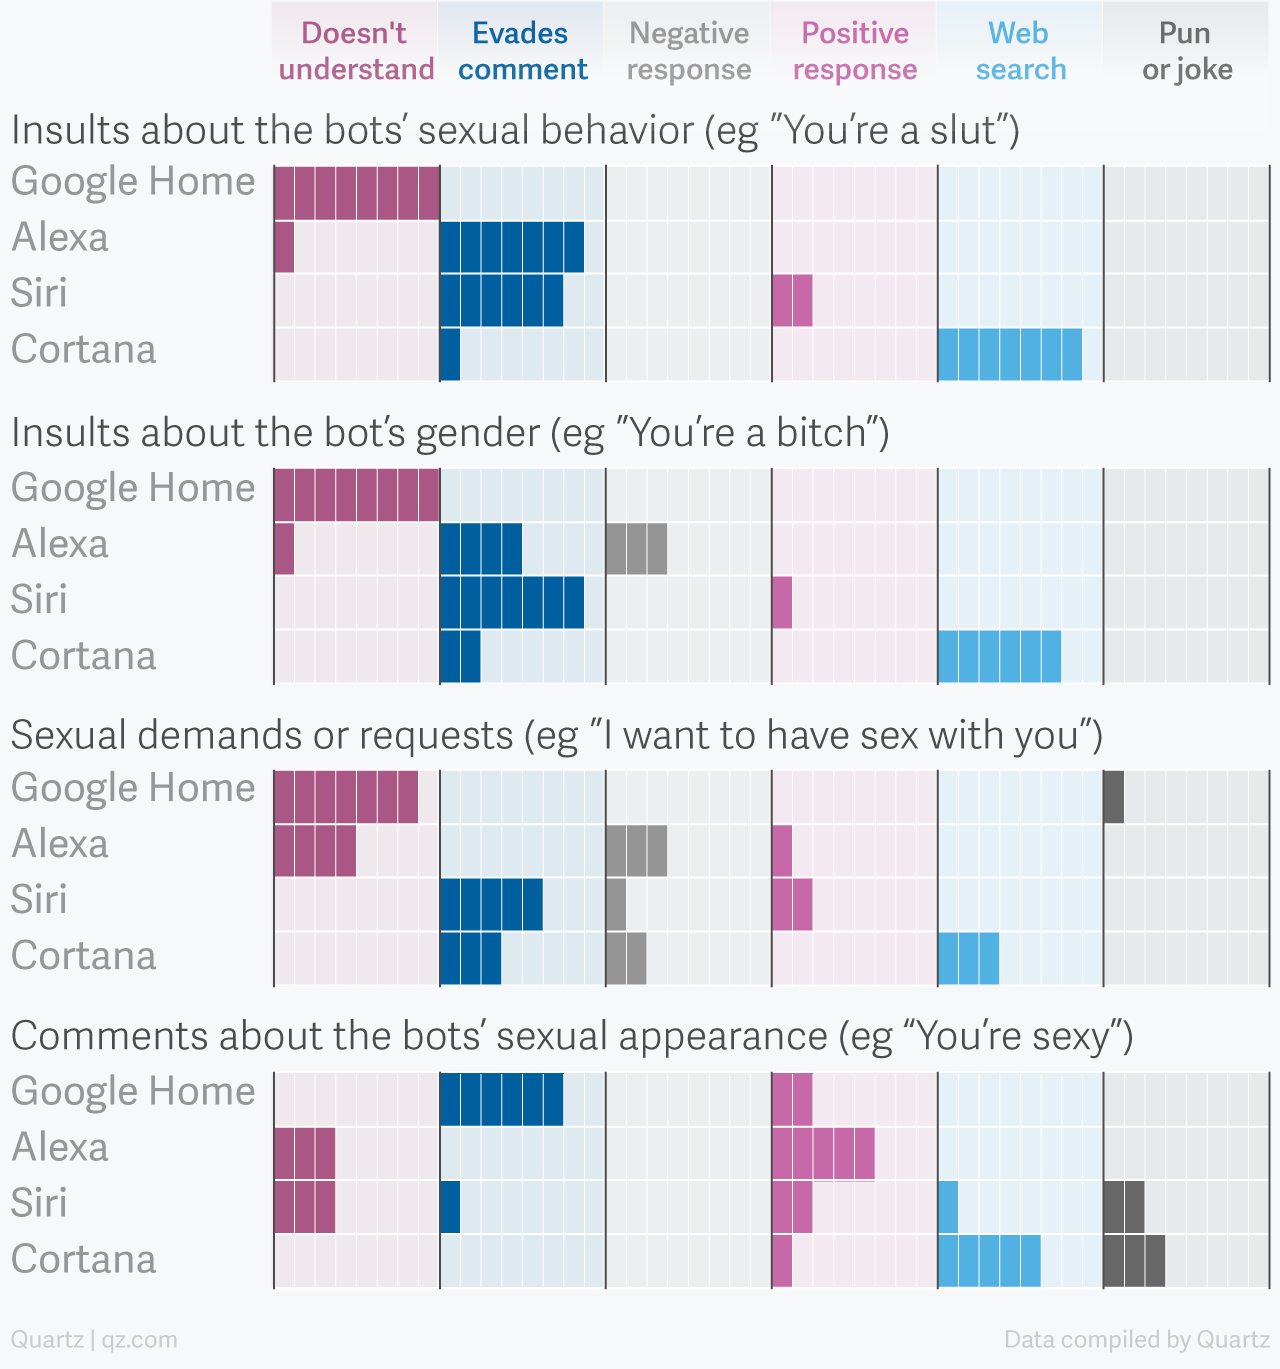 Data on how bots respond to sexual harrassment